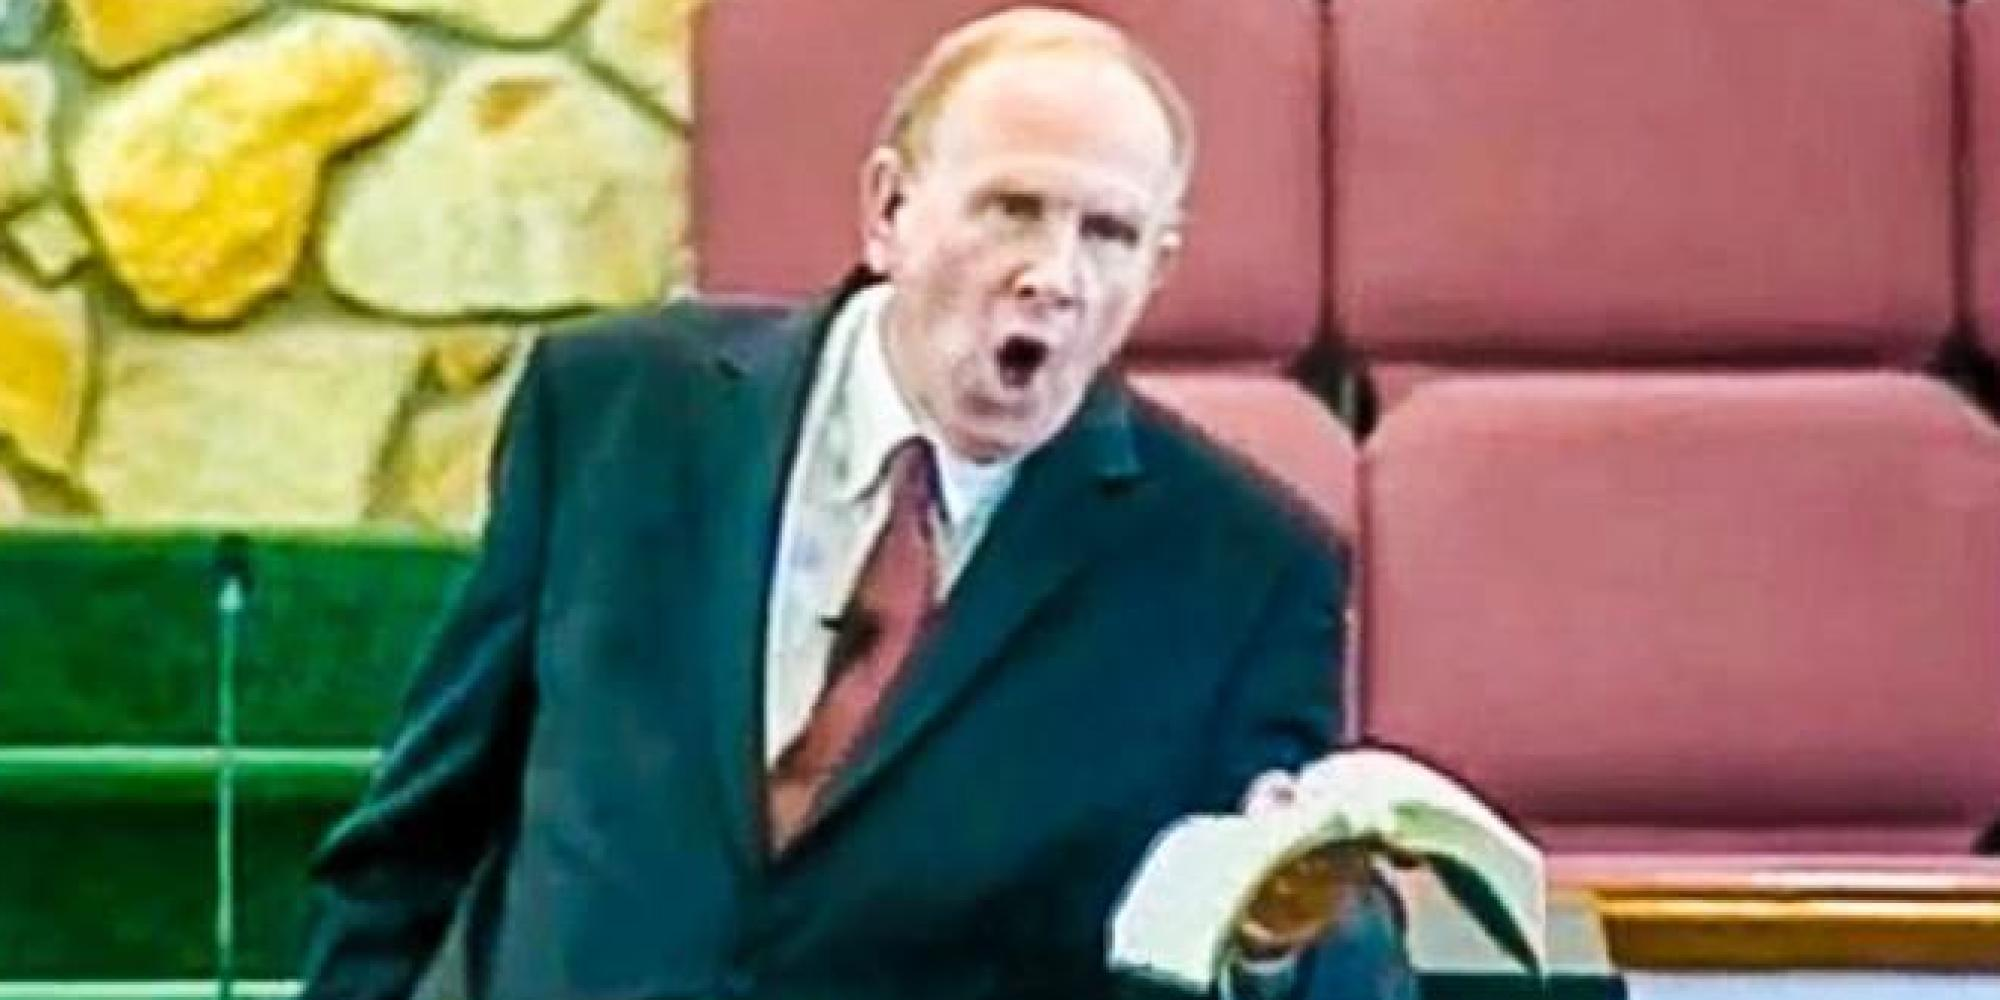 Ron Baity Baptist Preacher Claims God Will Send